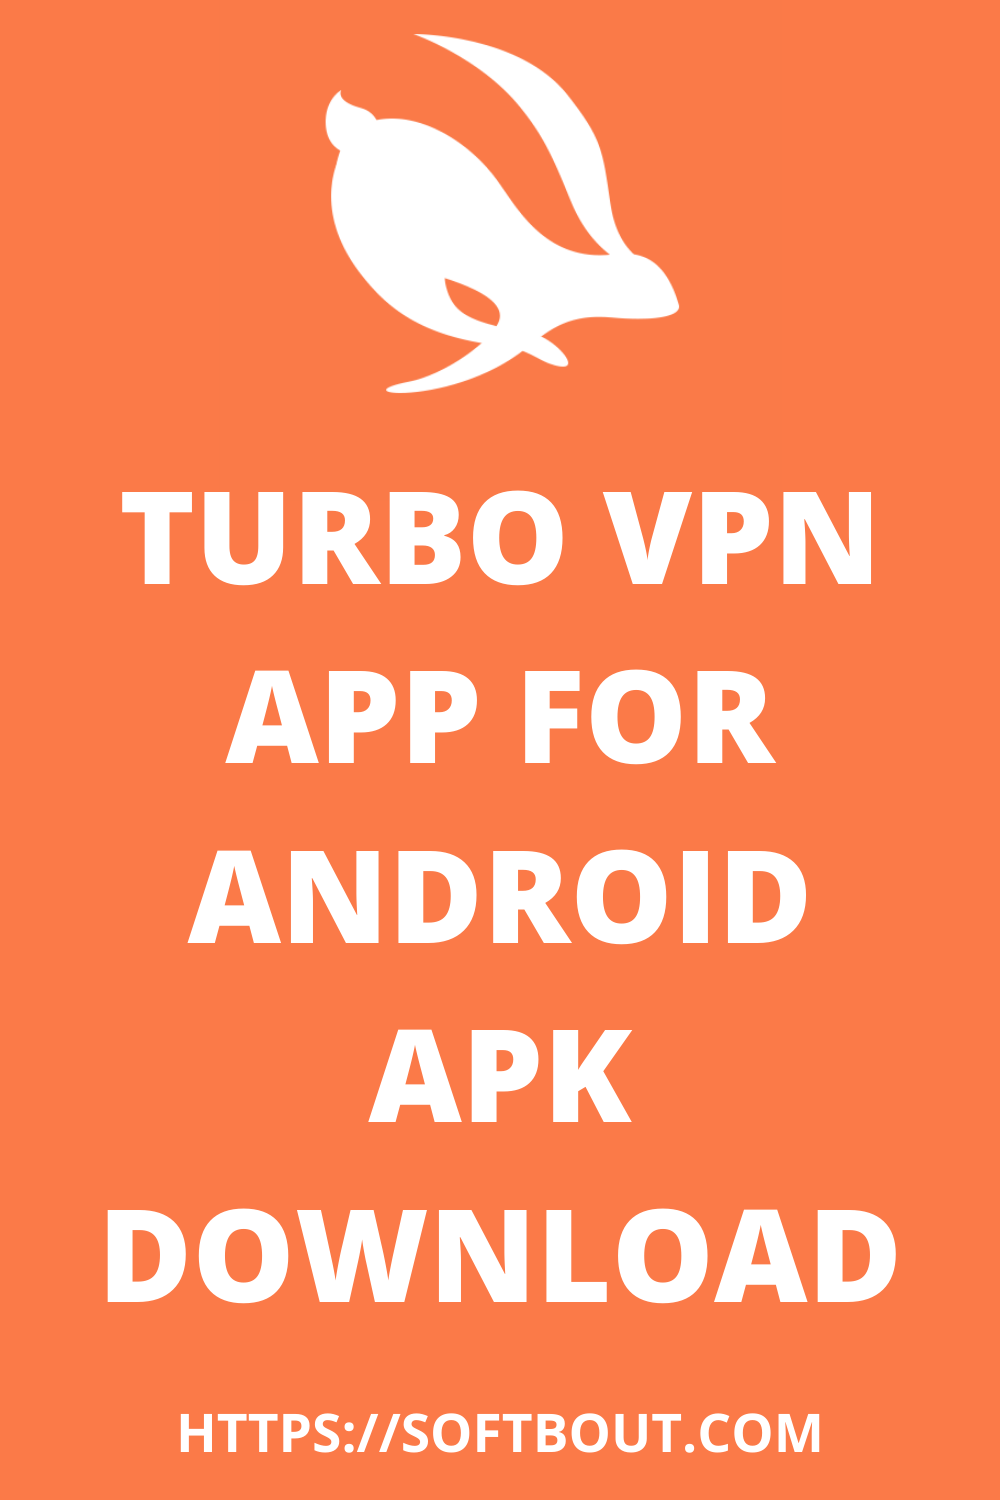 Consult our handy faq to see which download is right for you. Turbo Vpn App For Android Apk Download Android Apk Network Software Android